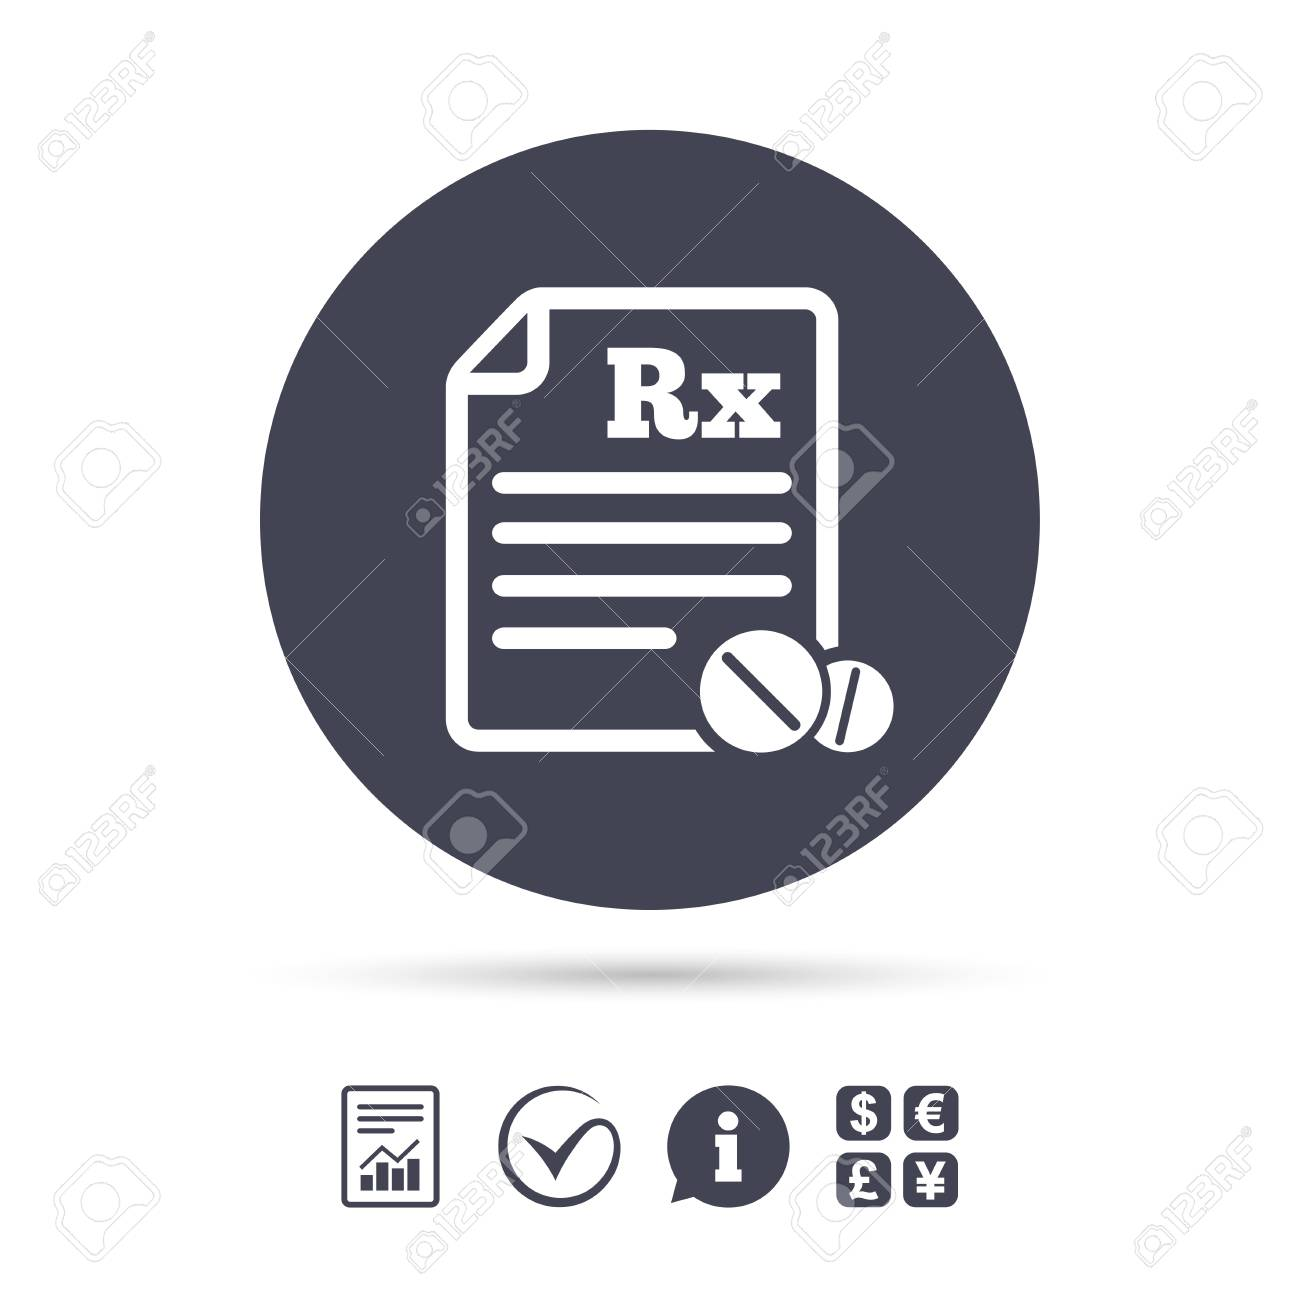 Medical prescription rx sign icon pharmacy or medicine symbol medical prescription rx sign icon pharmacy or medicine symbol with round tablets report buycottarizona